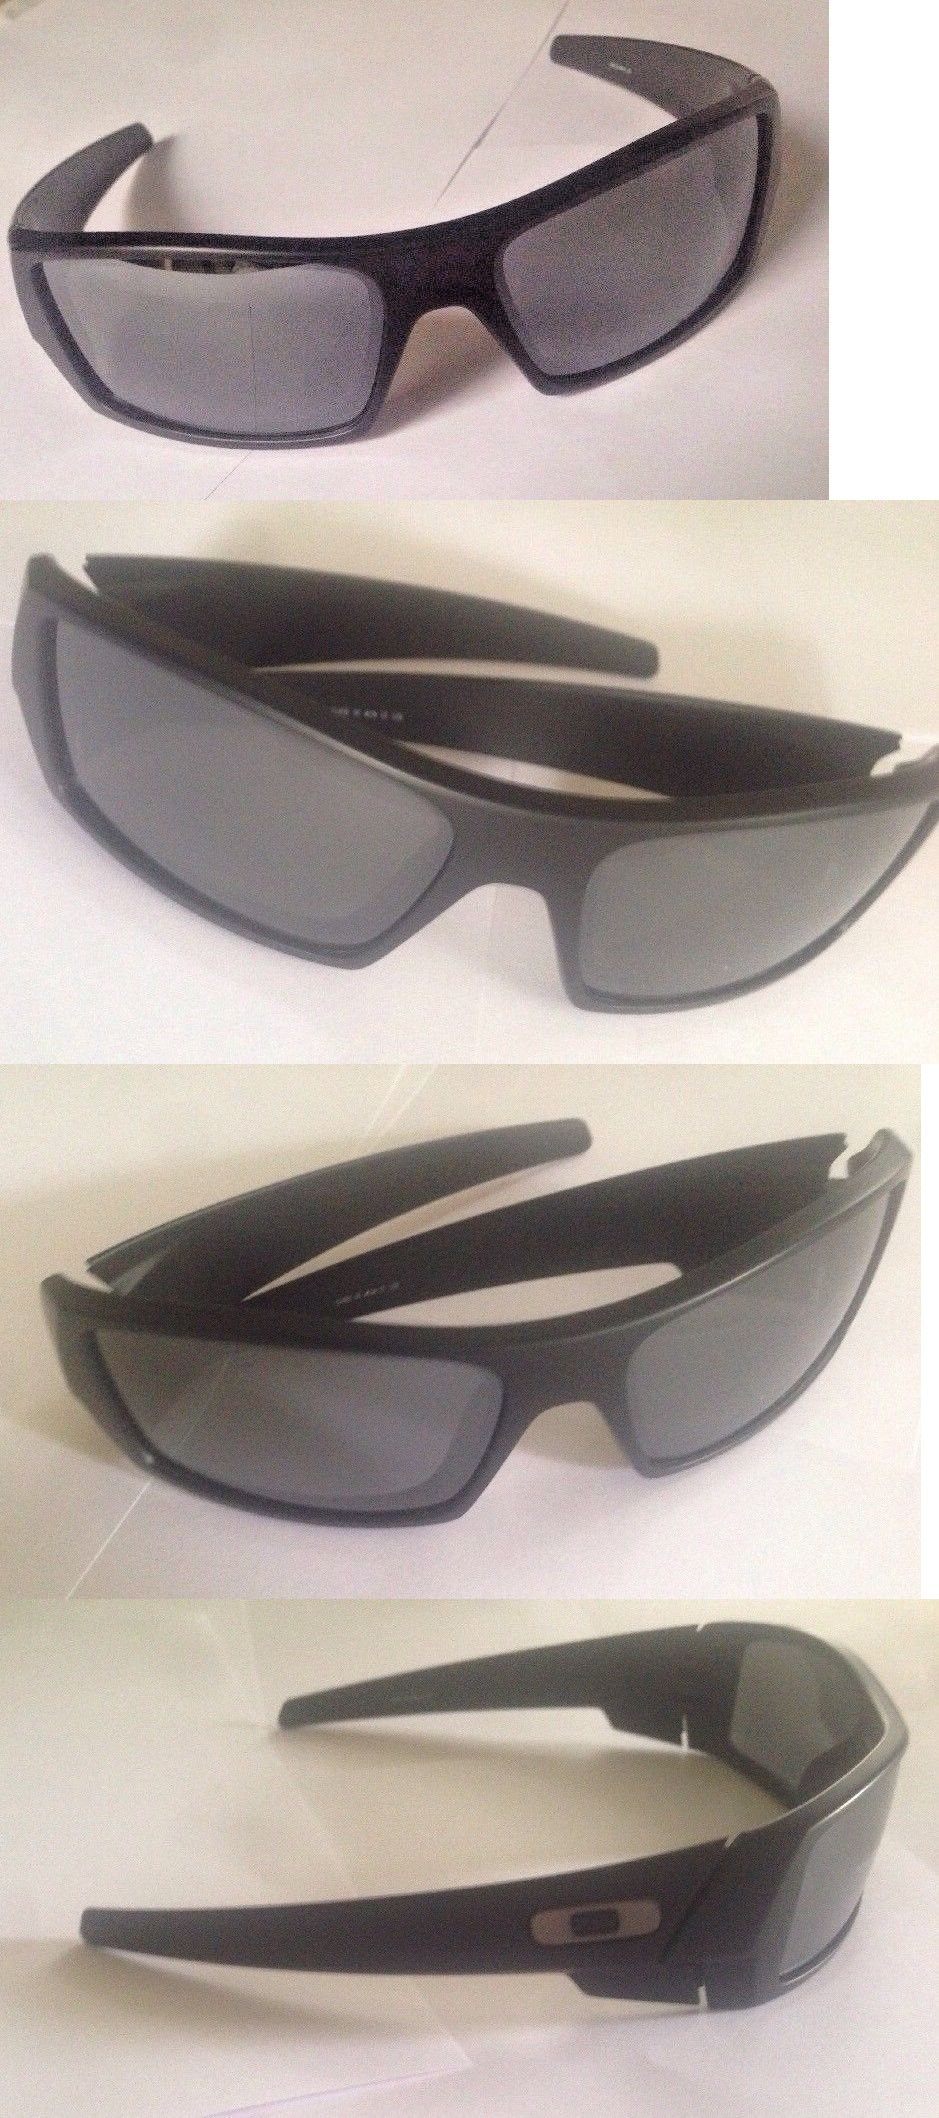 9d1fa458001 Sunglasses 79720   New  Oakley Gascan 12-856 In Matte Black With Black  Iridium Polarized Lens -  BUY IT NOW ONLY   79.95 on eBay!